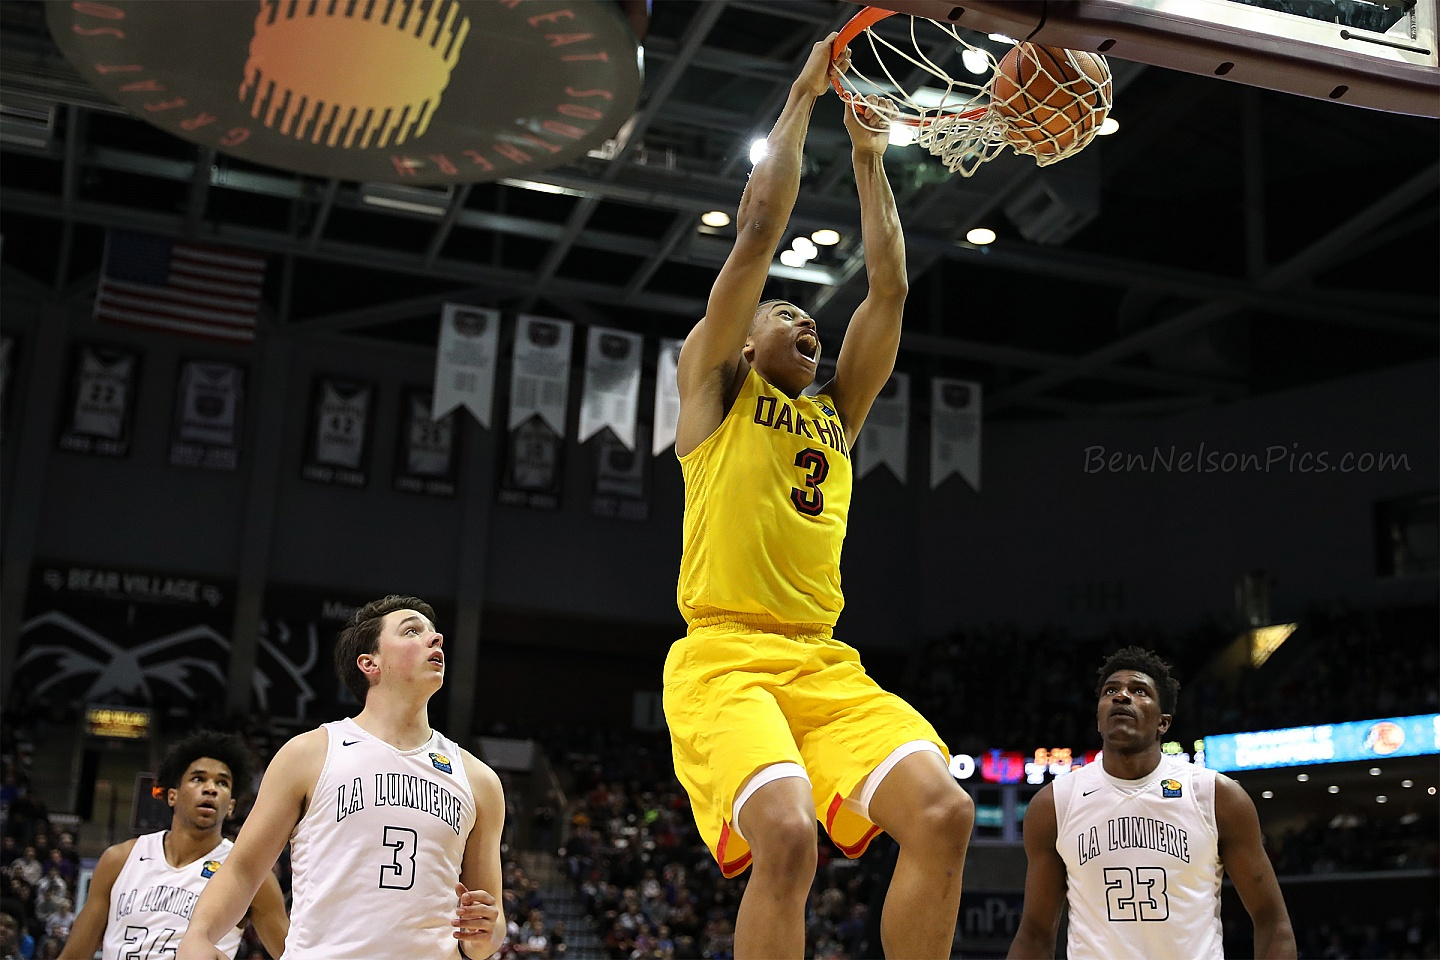 Bass Pro Shops Tournament of Champions 2018 - Keldon Johnson Oak Hill Academy with impressive dunk taken during the 2018 TofC